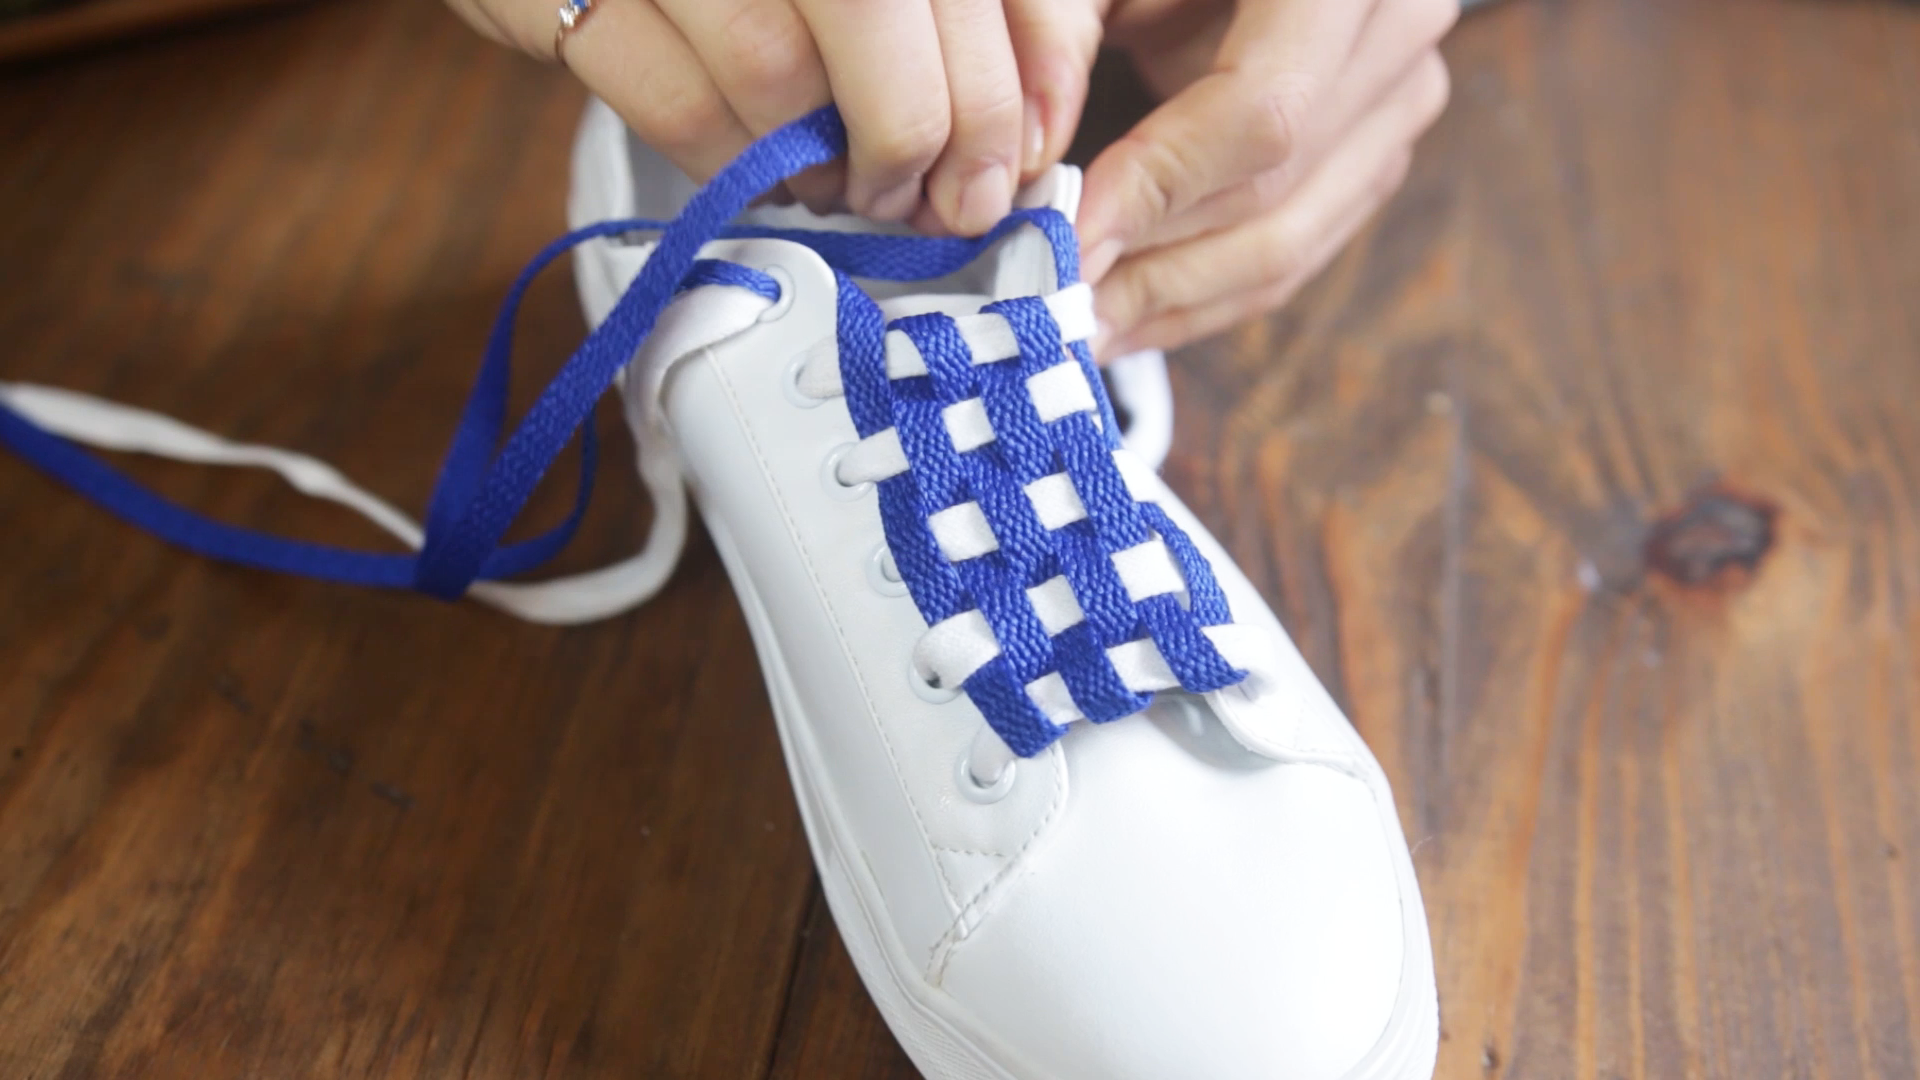 How to lace sneakers with checkerboard